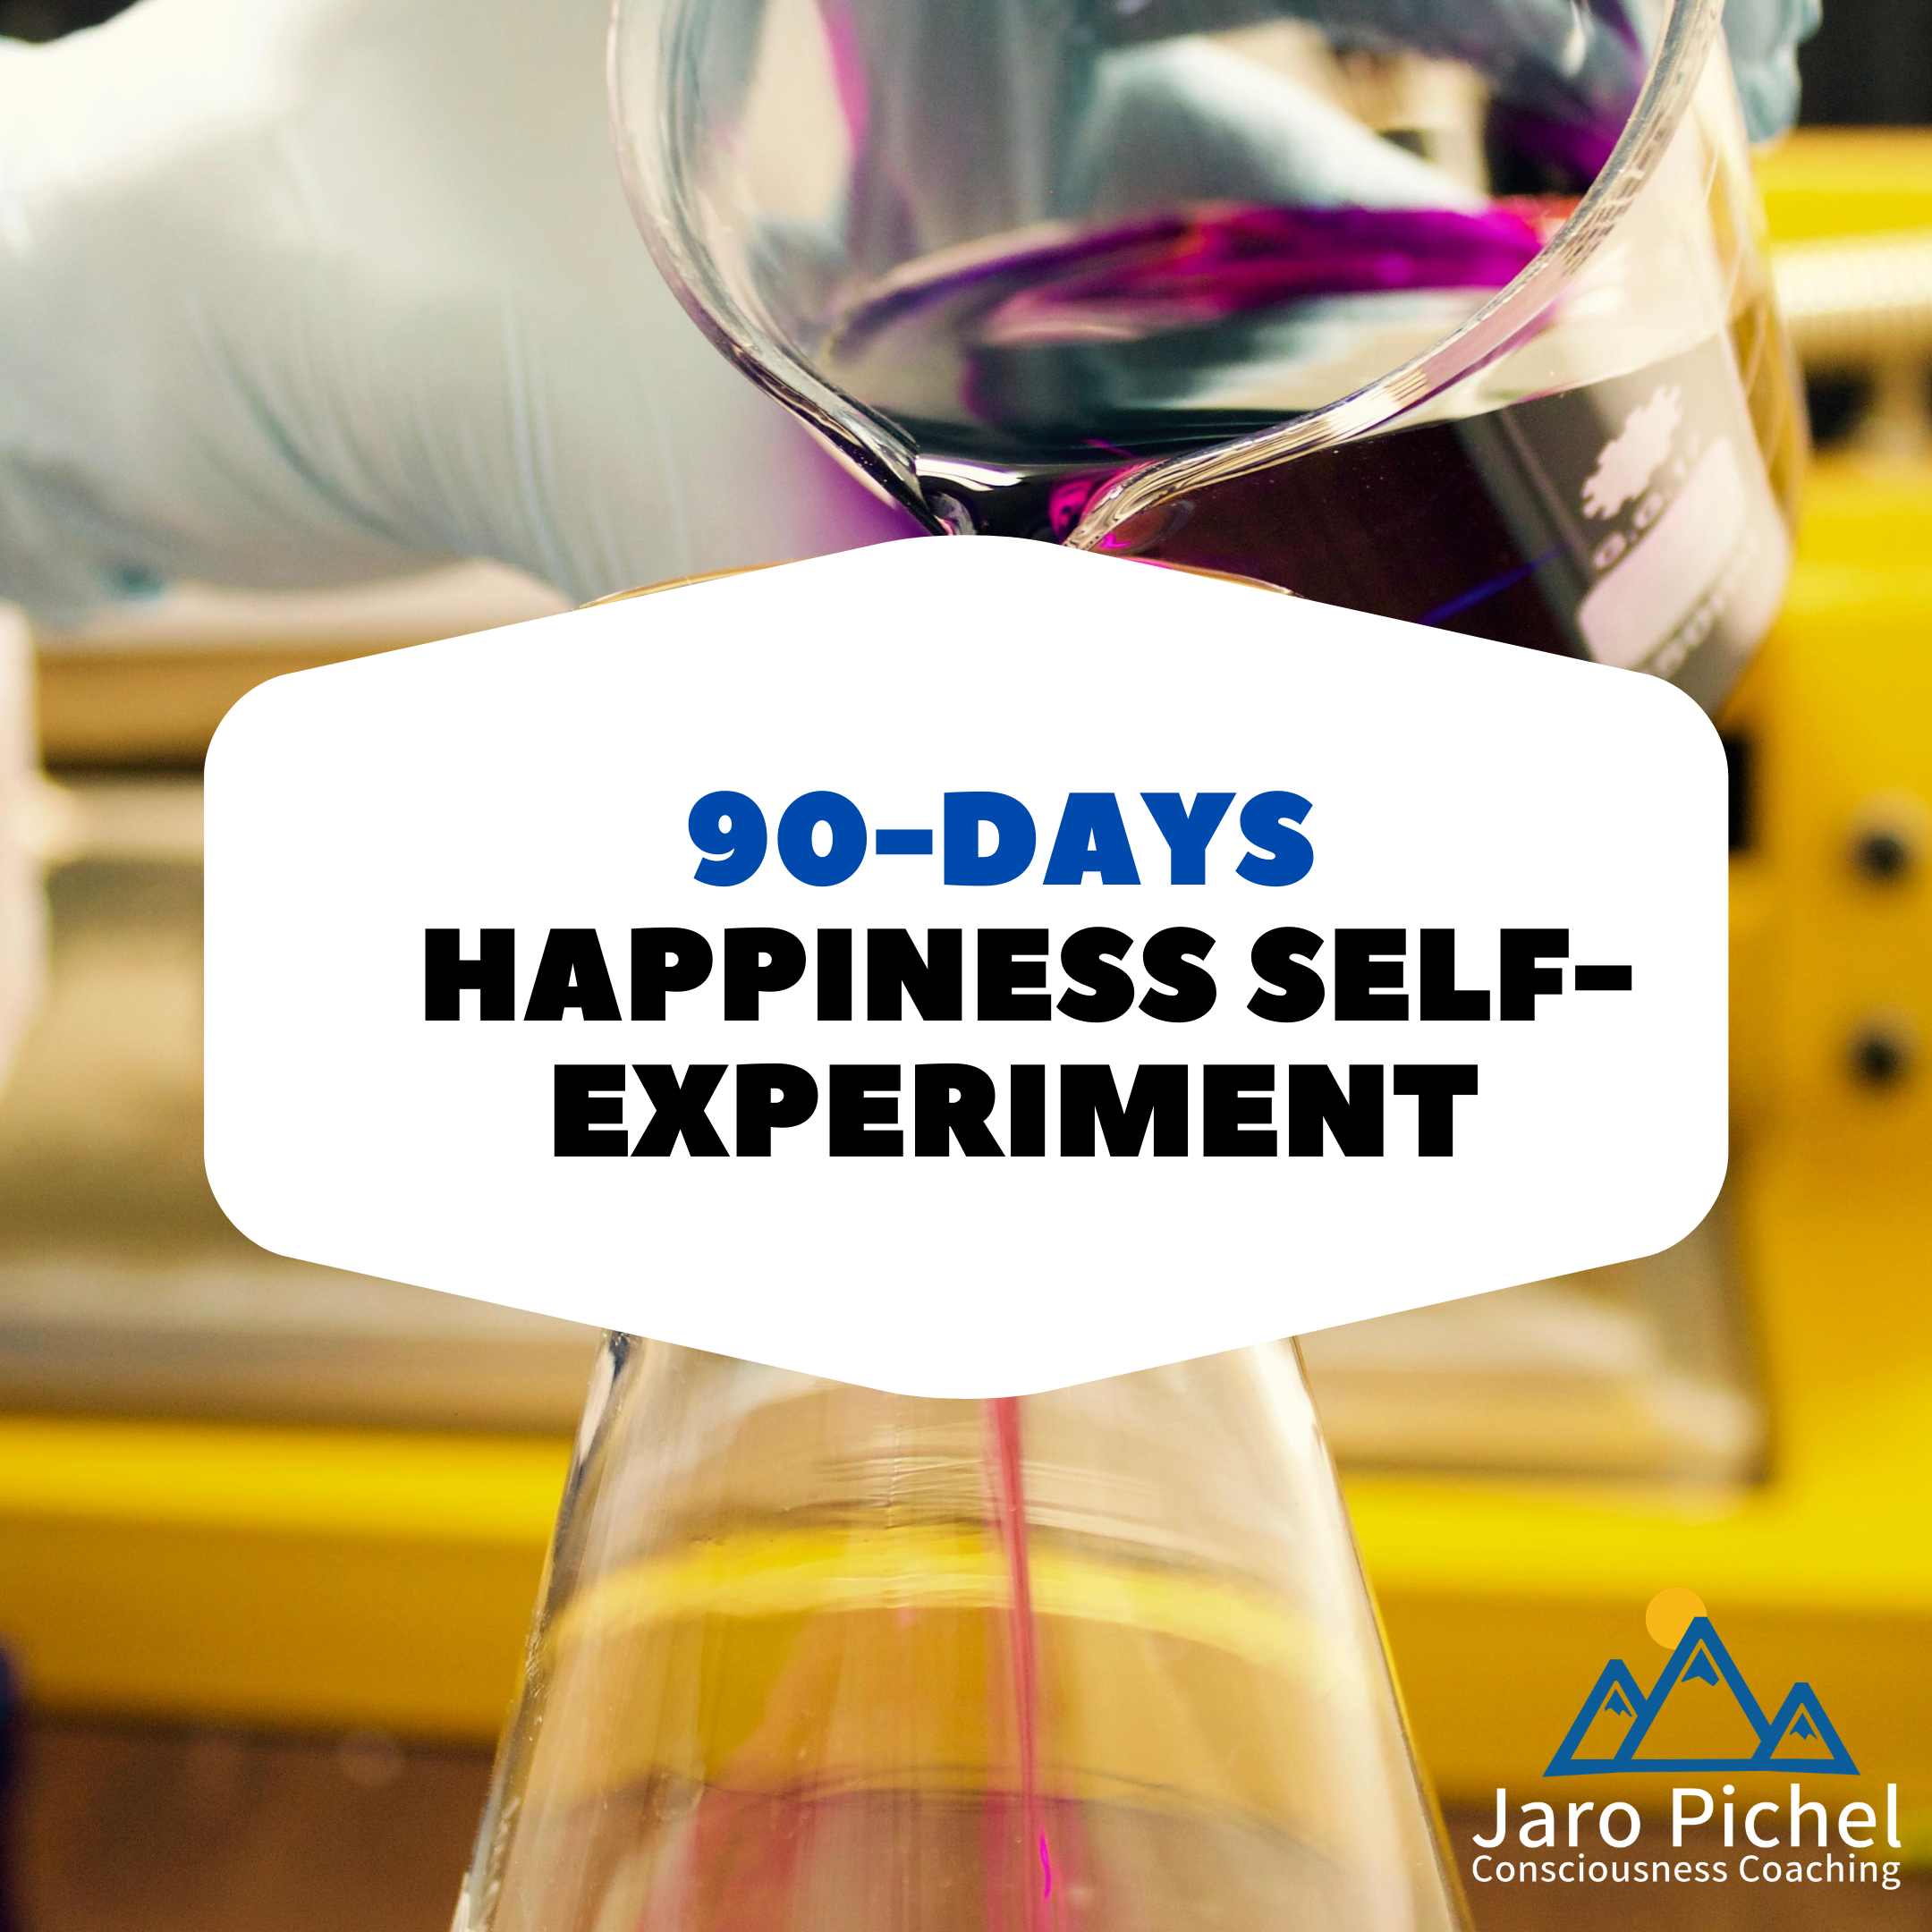 The 90-Days Happiness Self-Experiment